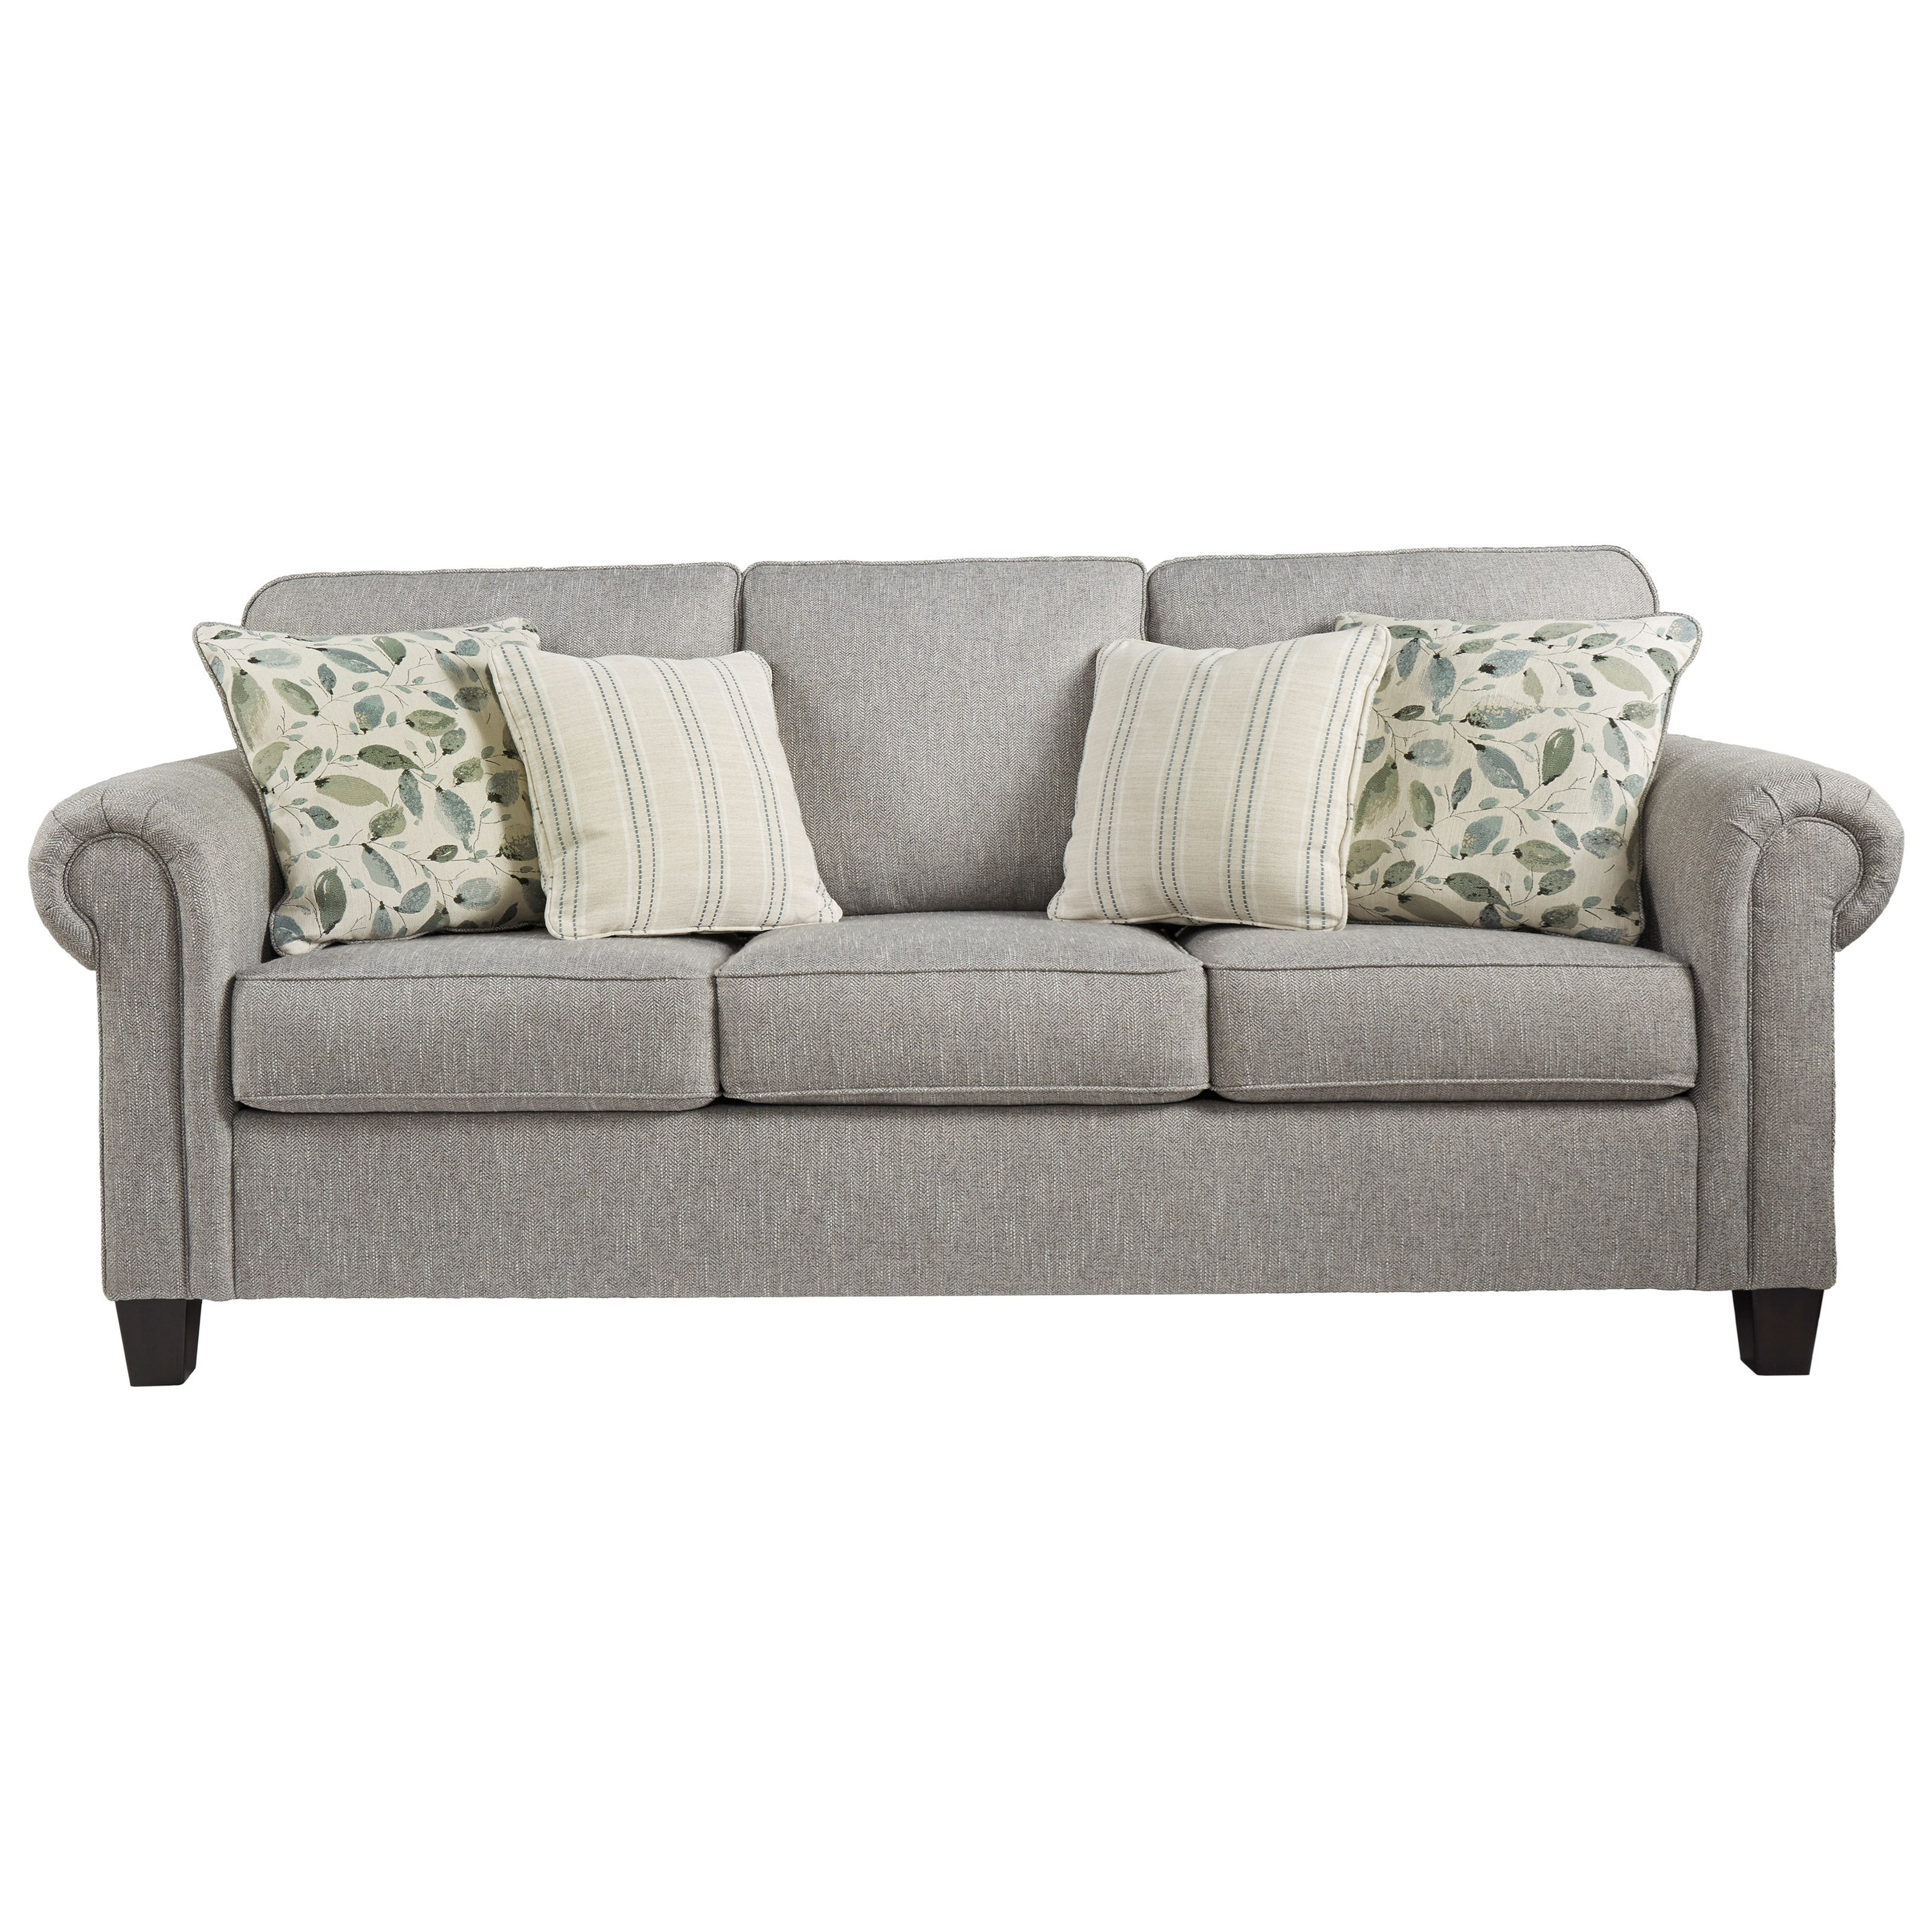 Alandari Queen Sofa Sleeper by Signature Design by Ashley at Pedigo Furniture